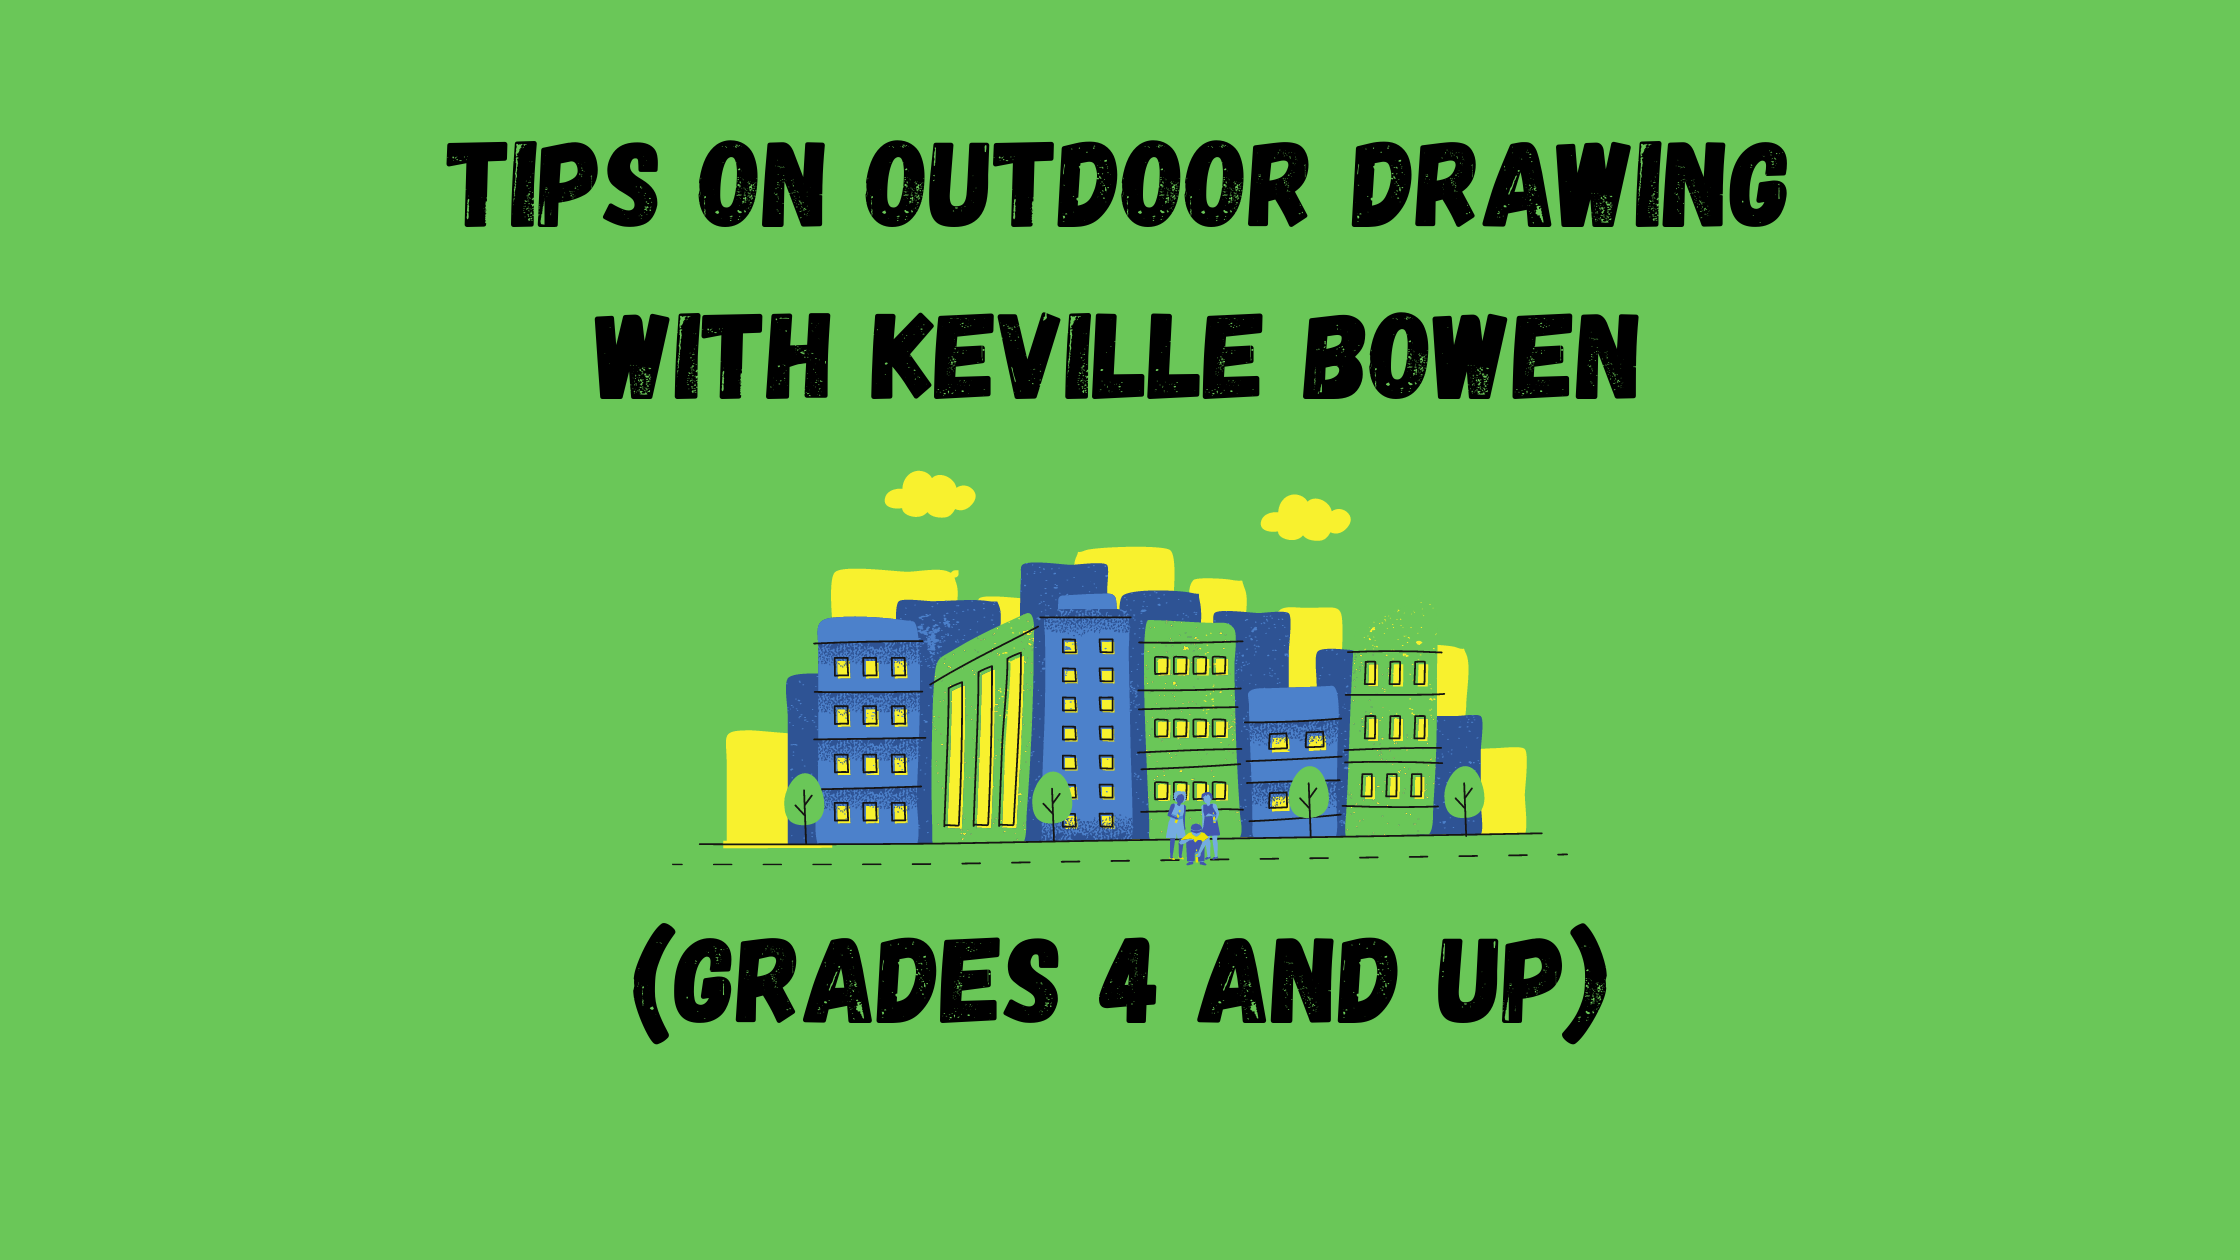 Tips on Outdoor Drawing with Keville Bowen (Grades 4 and up)